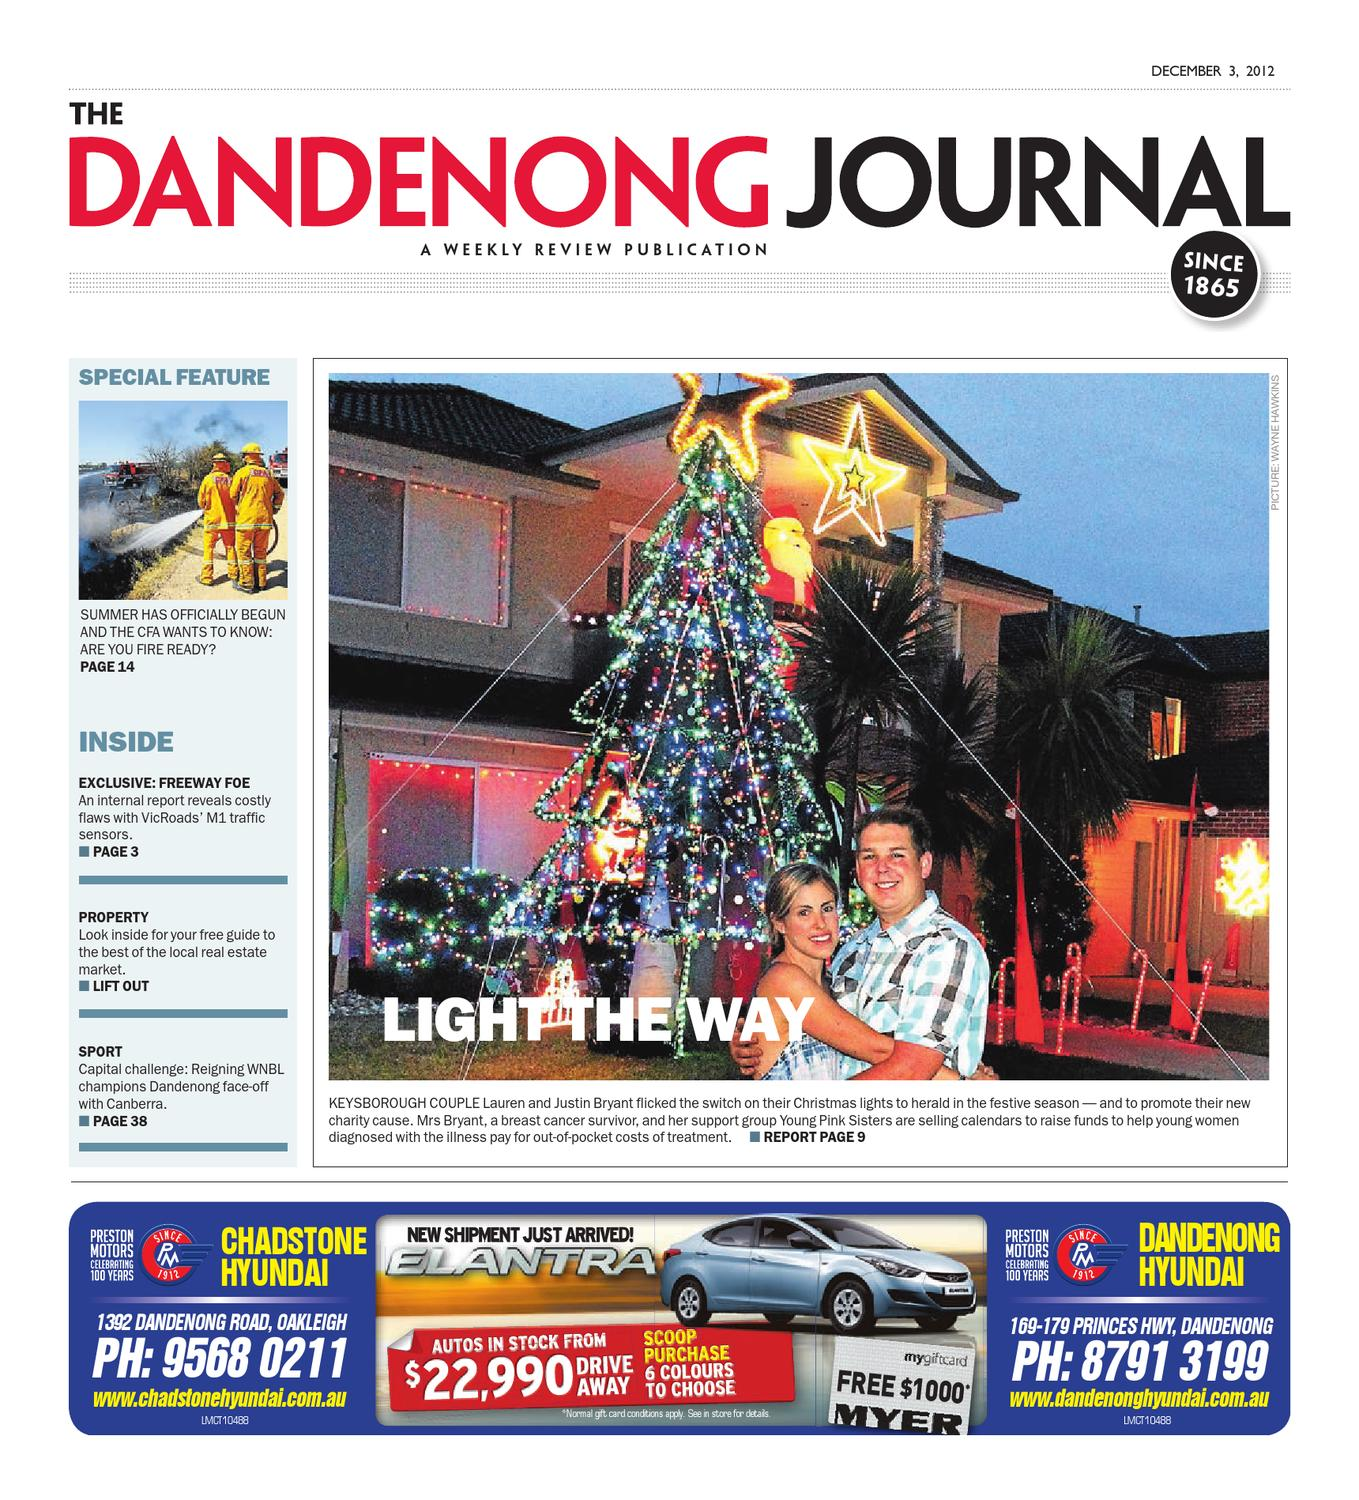 891effe76c The Dandenong Journal by The Weekly Review - issuu